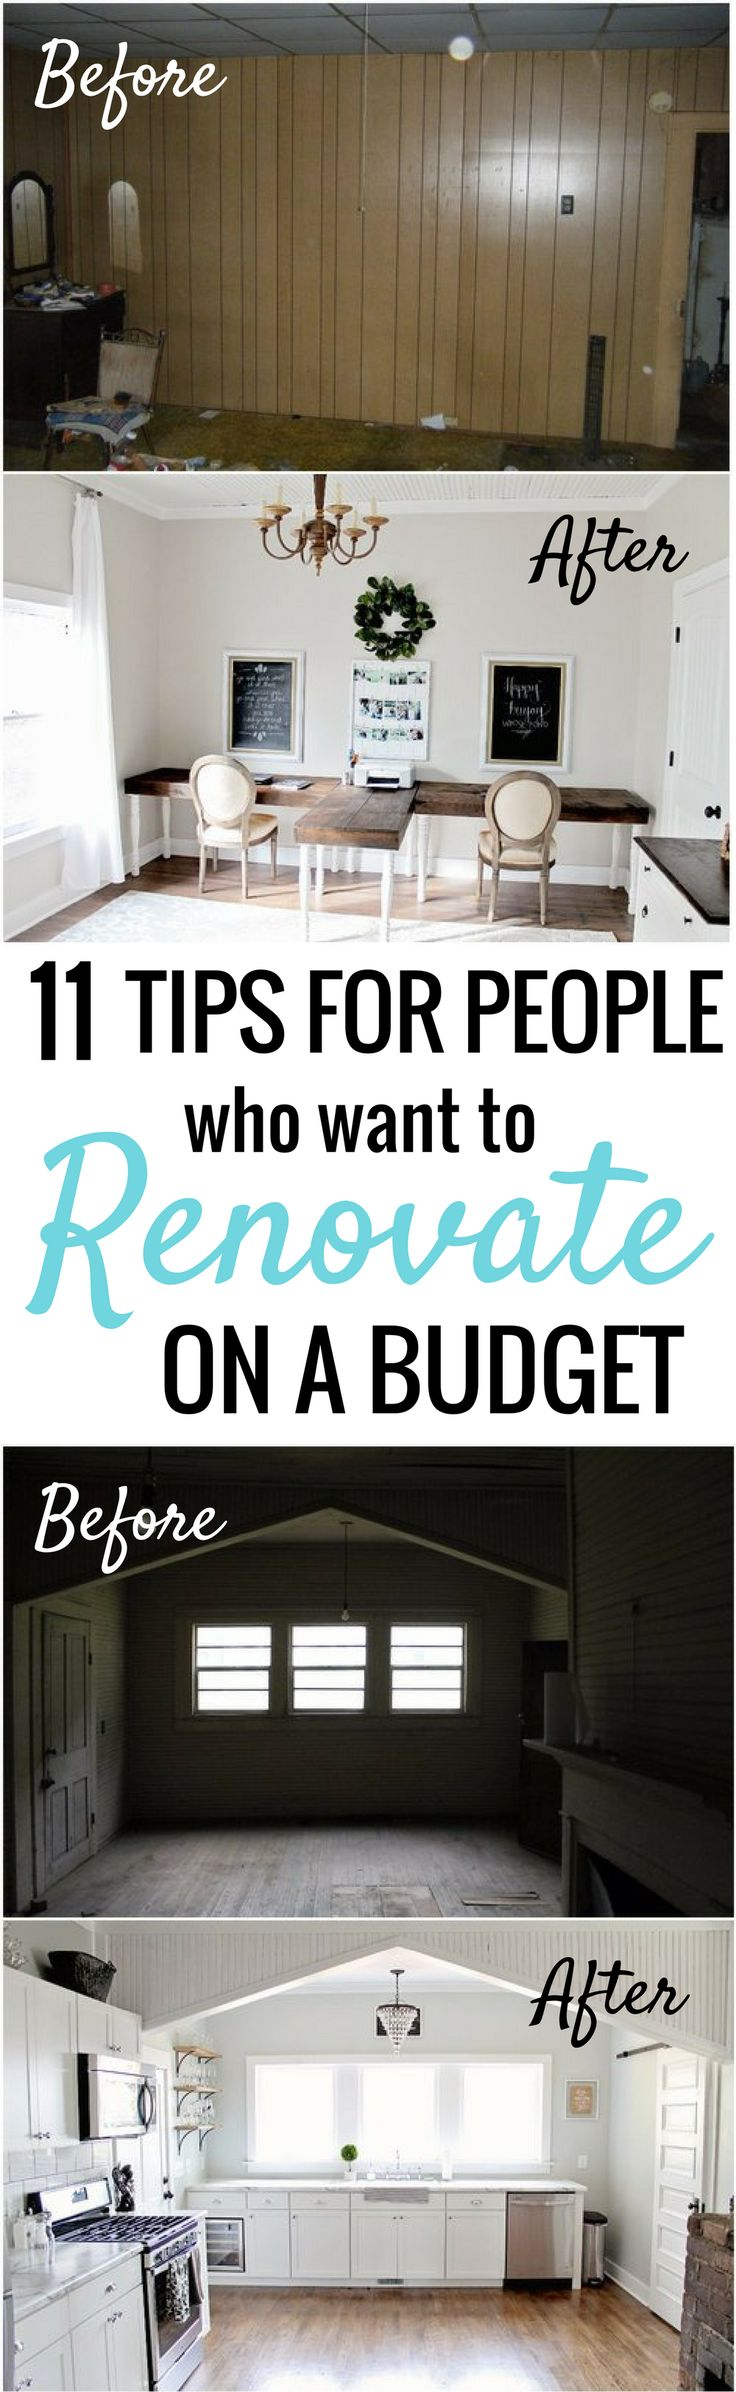 How she renovated and decorated her home on a budget is SO COOL! I'm so happy I found these AMAZING tips on decorating on a dime! Now I have some great cheap home decor ideas! Definitely pinning!